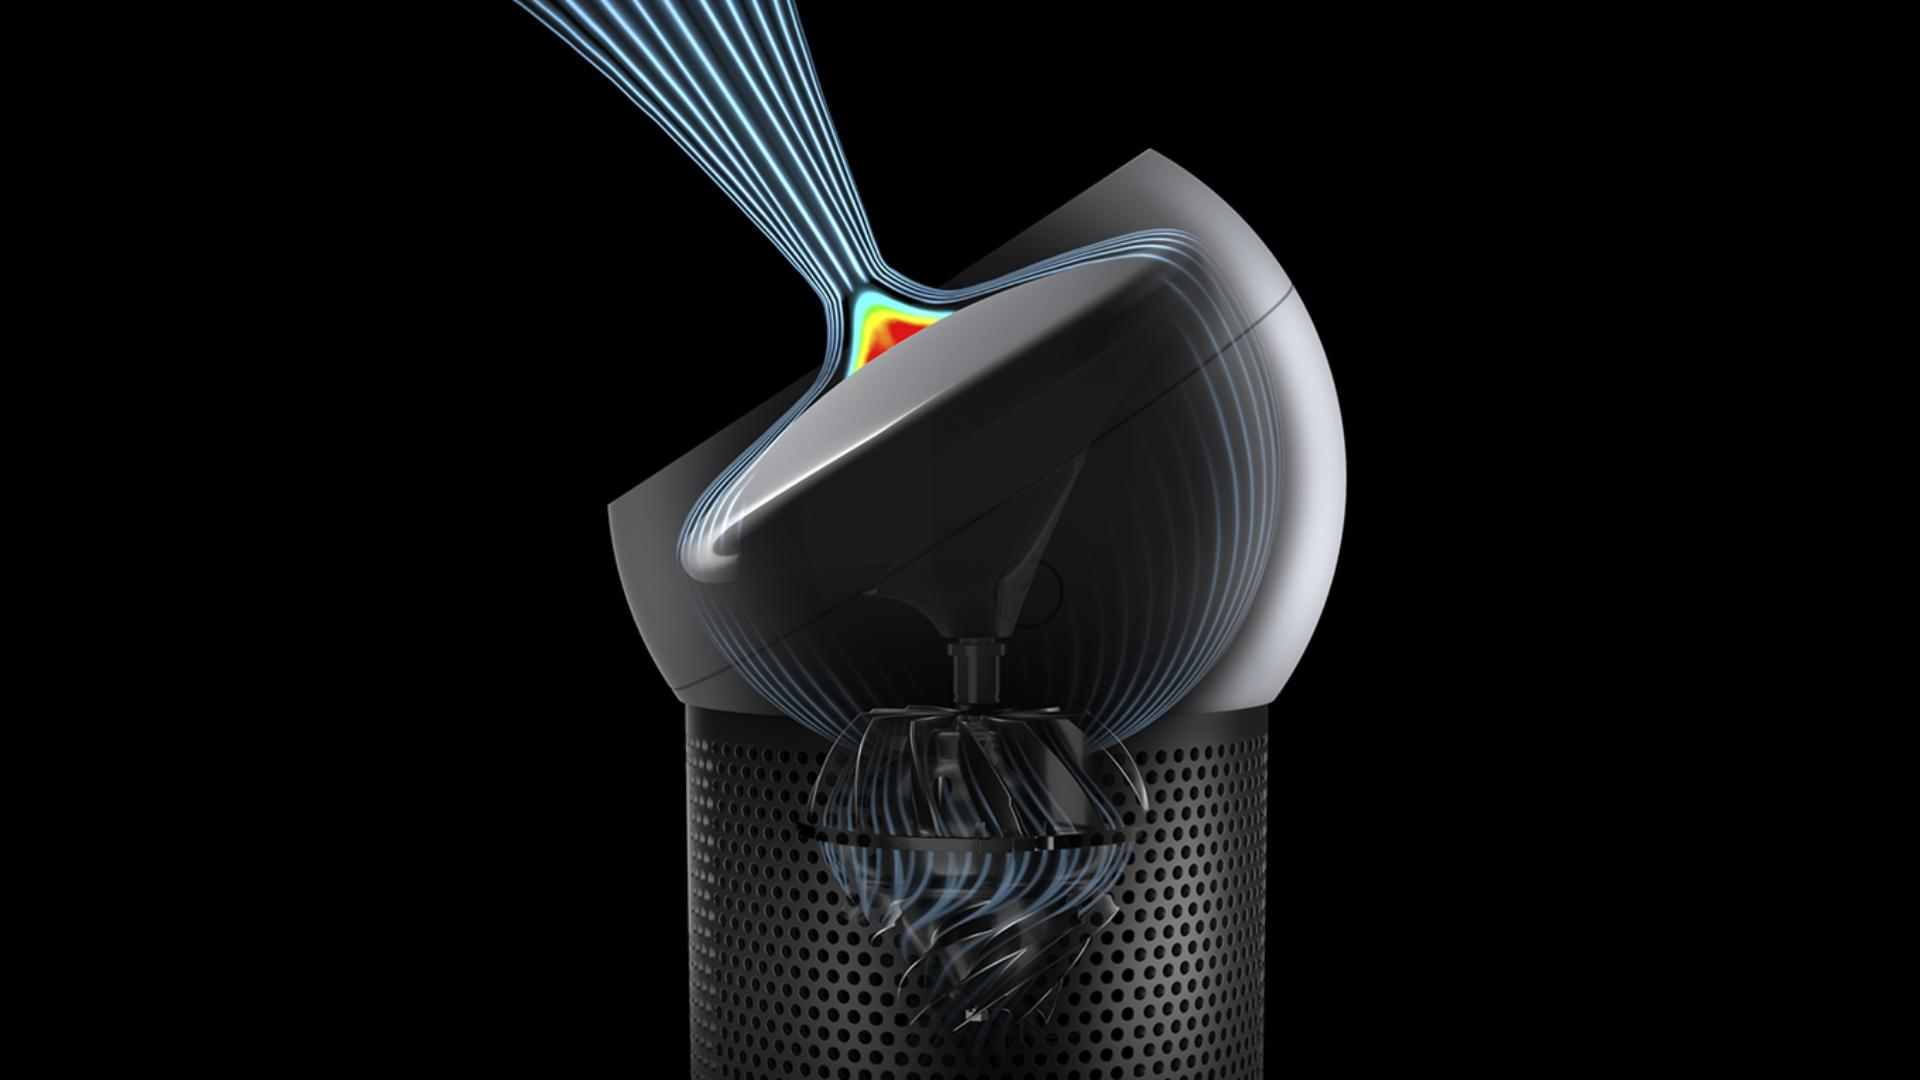 Purified air coalesces and is projected from the Dyson Pure Cool MeTM personal purifying fan